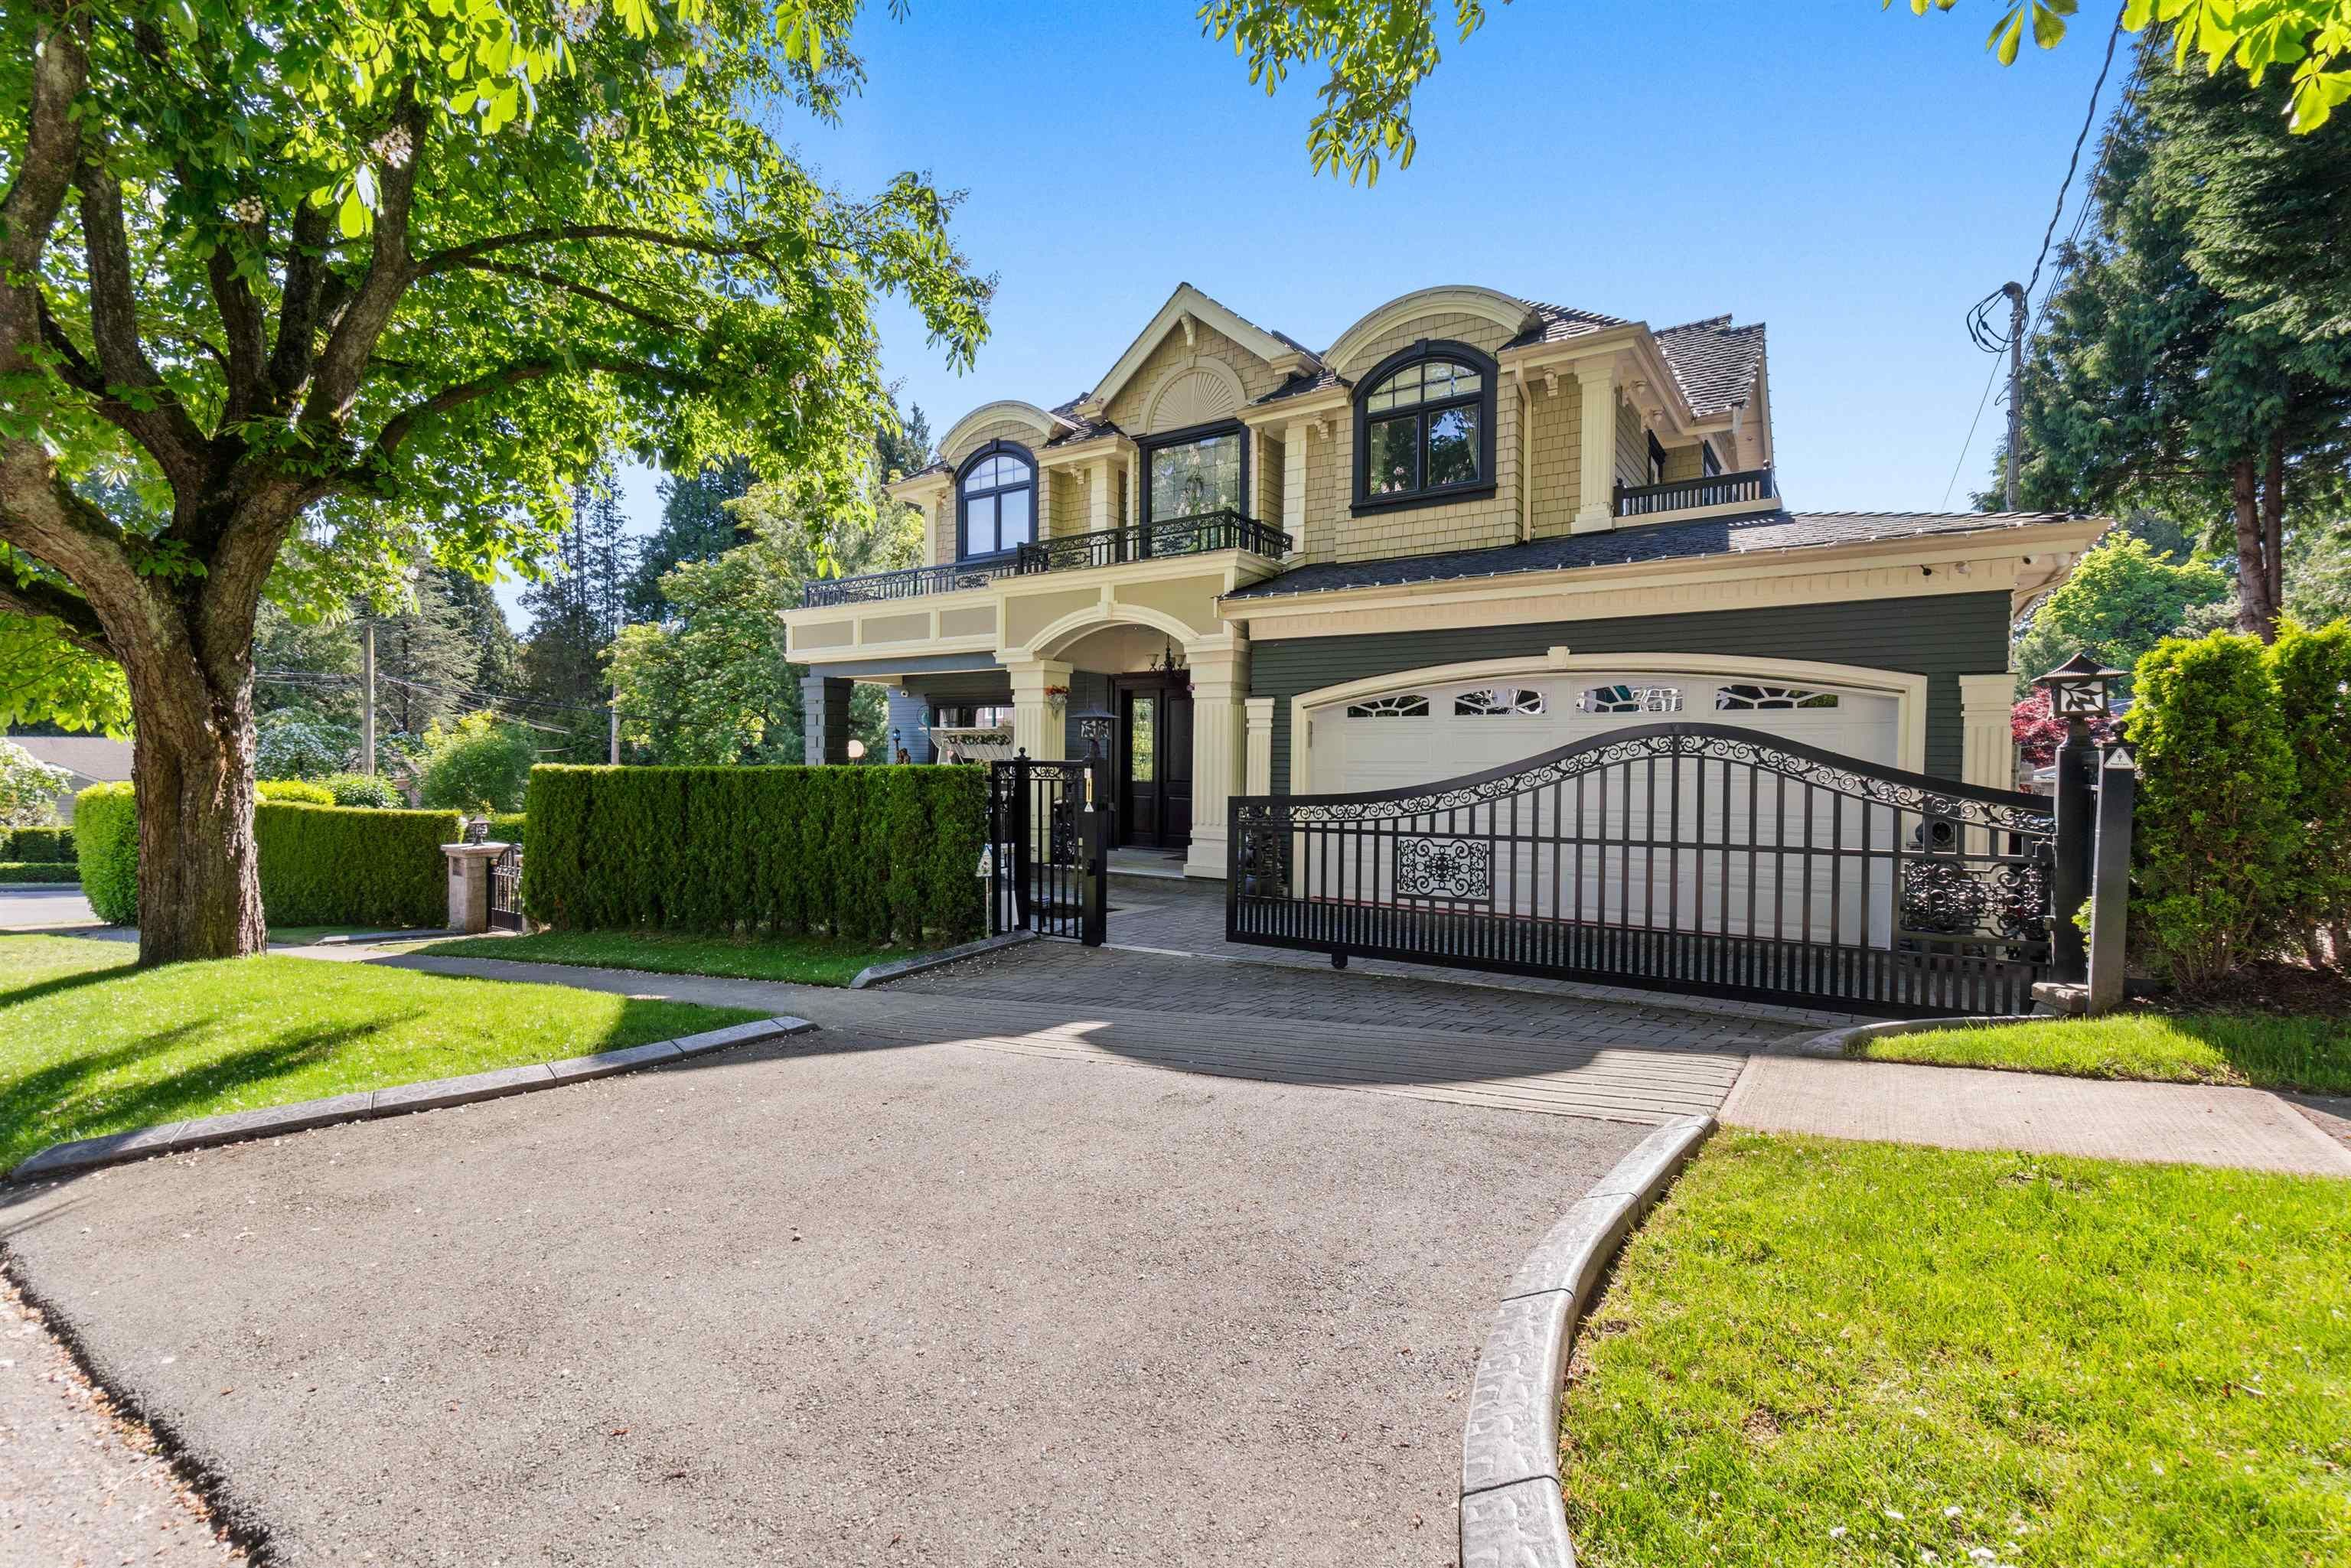 Main Photo: 6487 MCCLEERY Street in Vancouver: Kerrisdale House for sale (Vancouver West)  : MLS®# R2623775